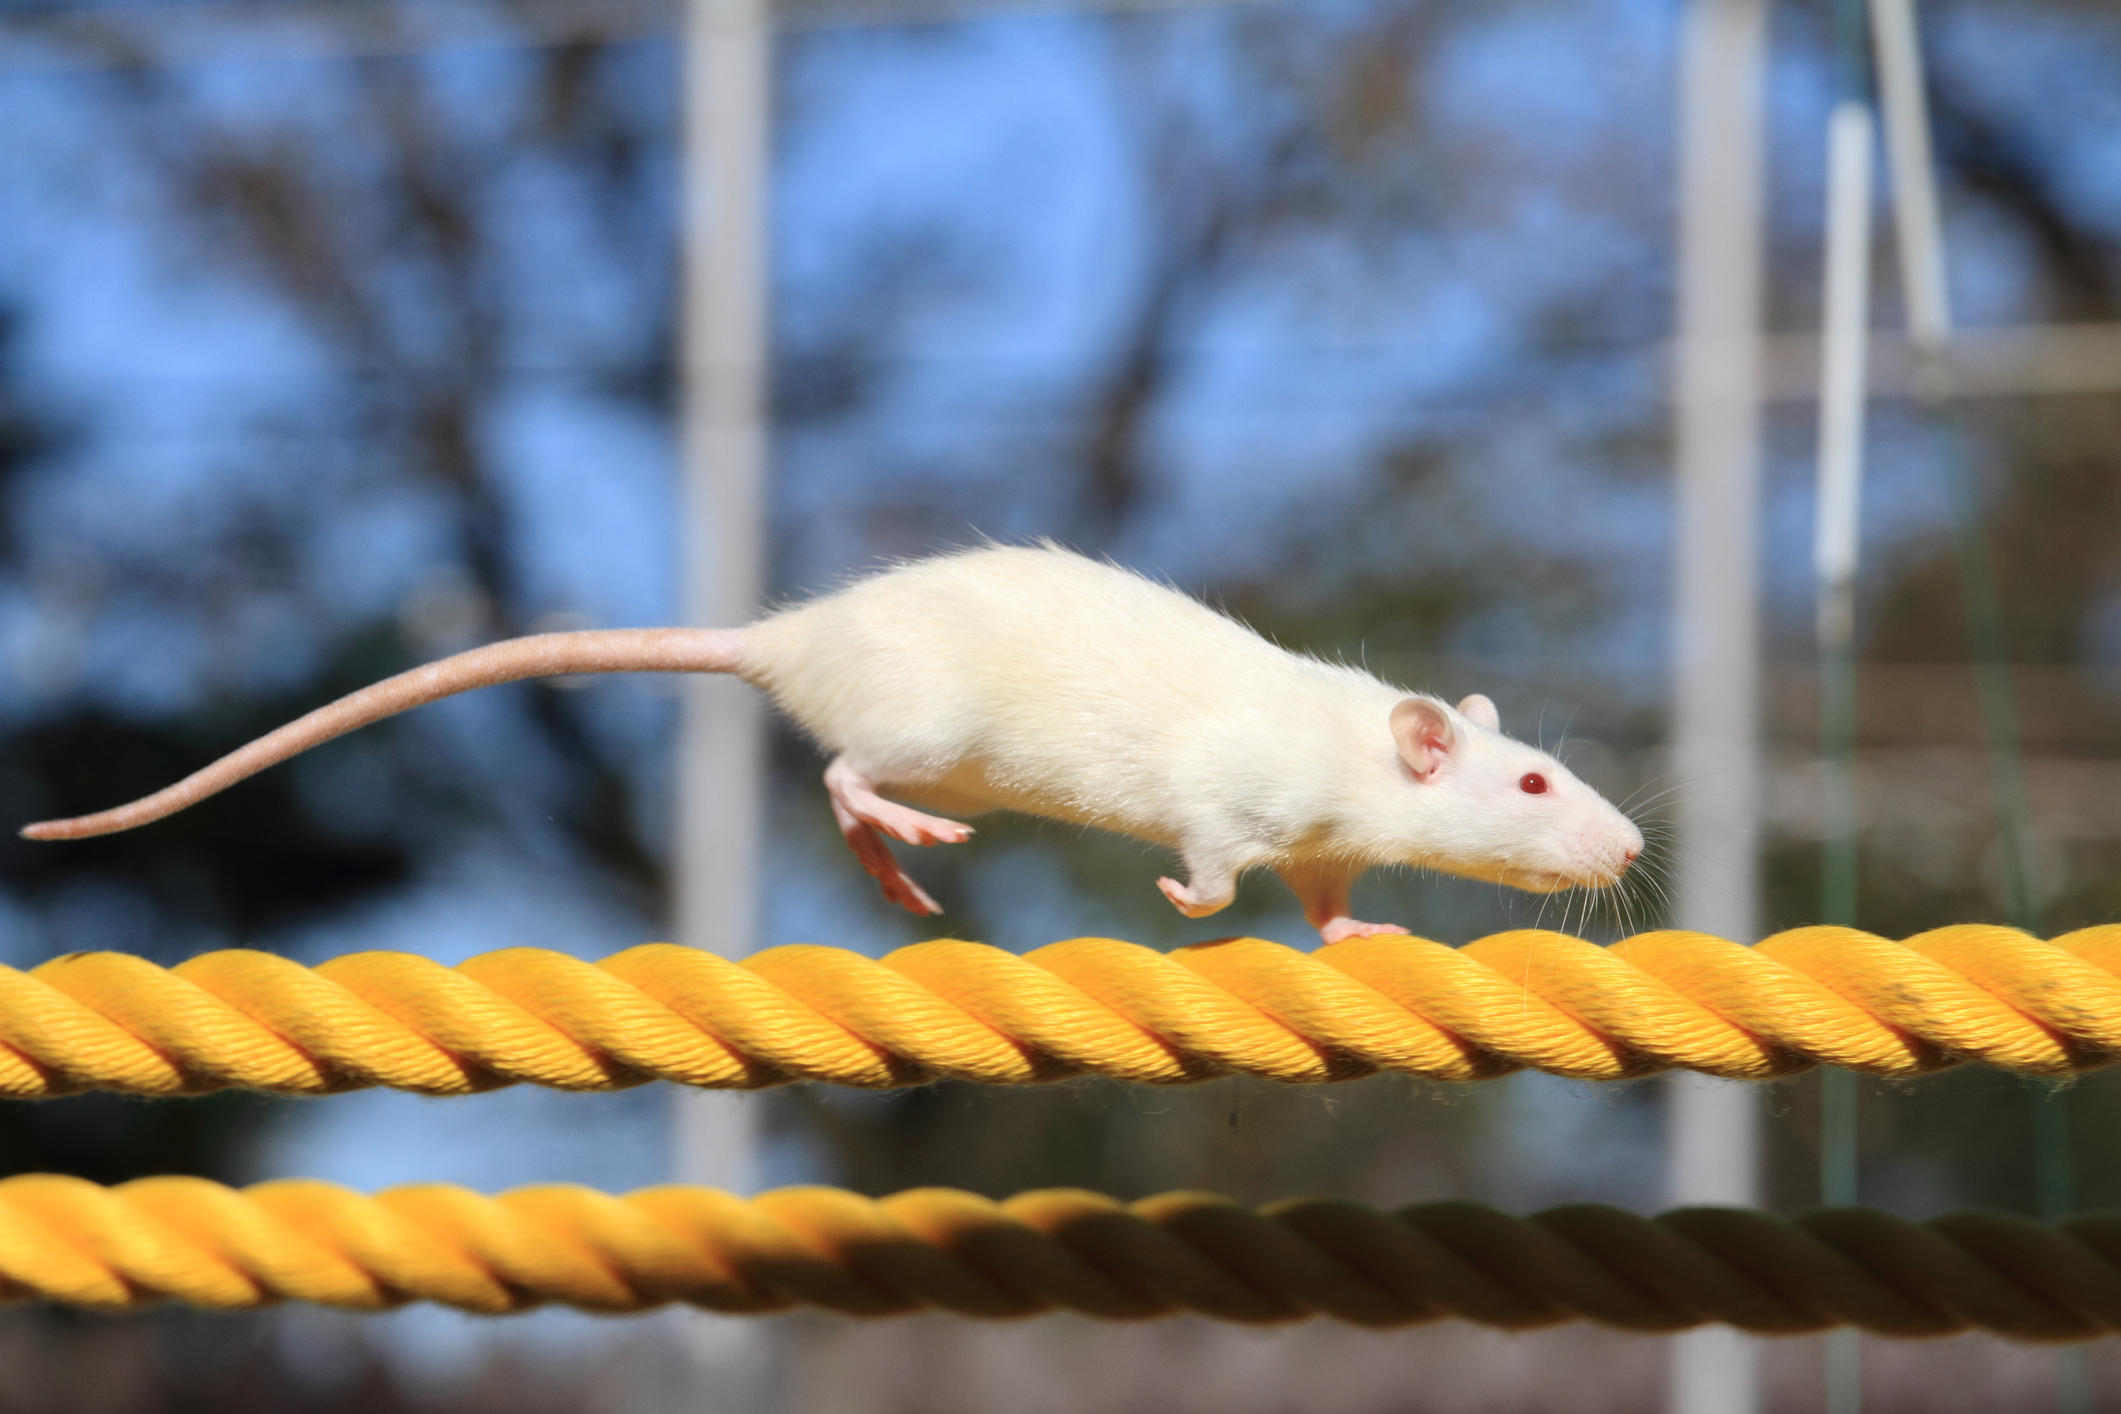 (VIDEO) General Pest Control: How To Keep Rodents Away